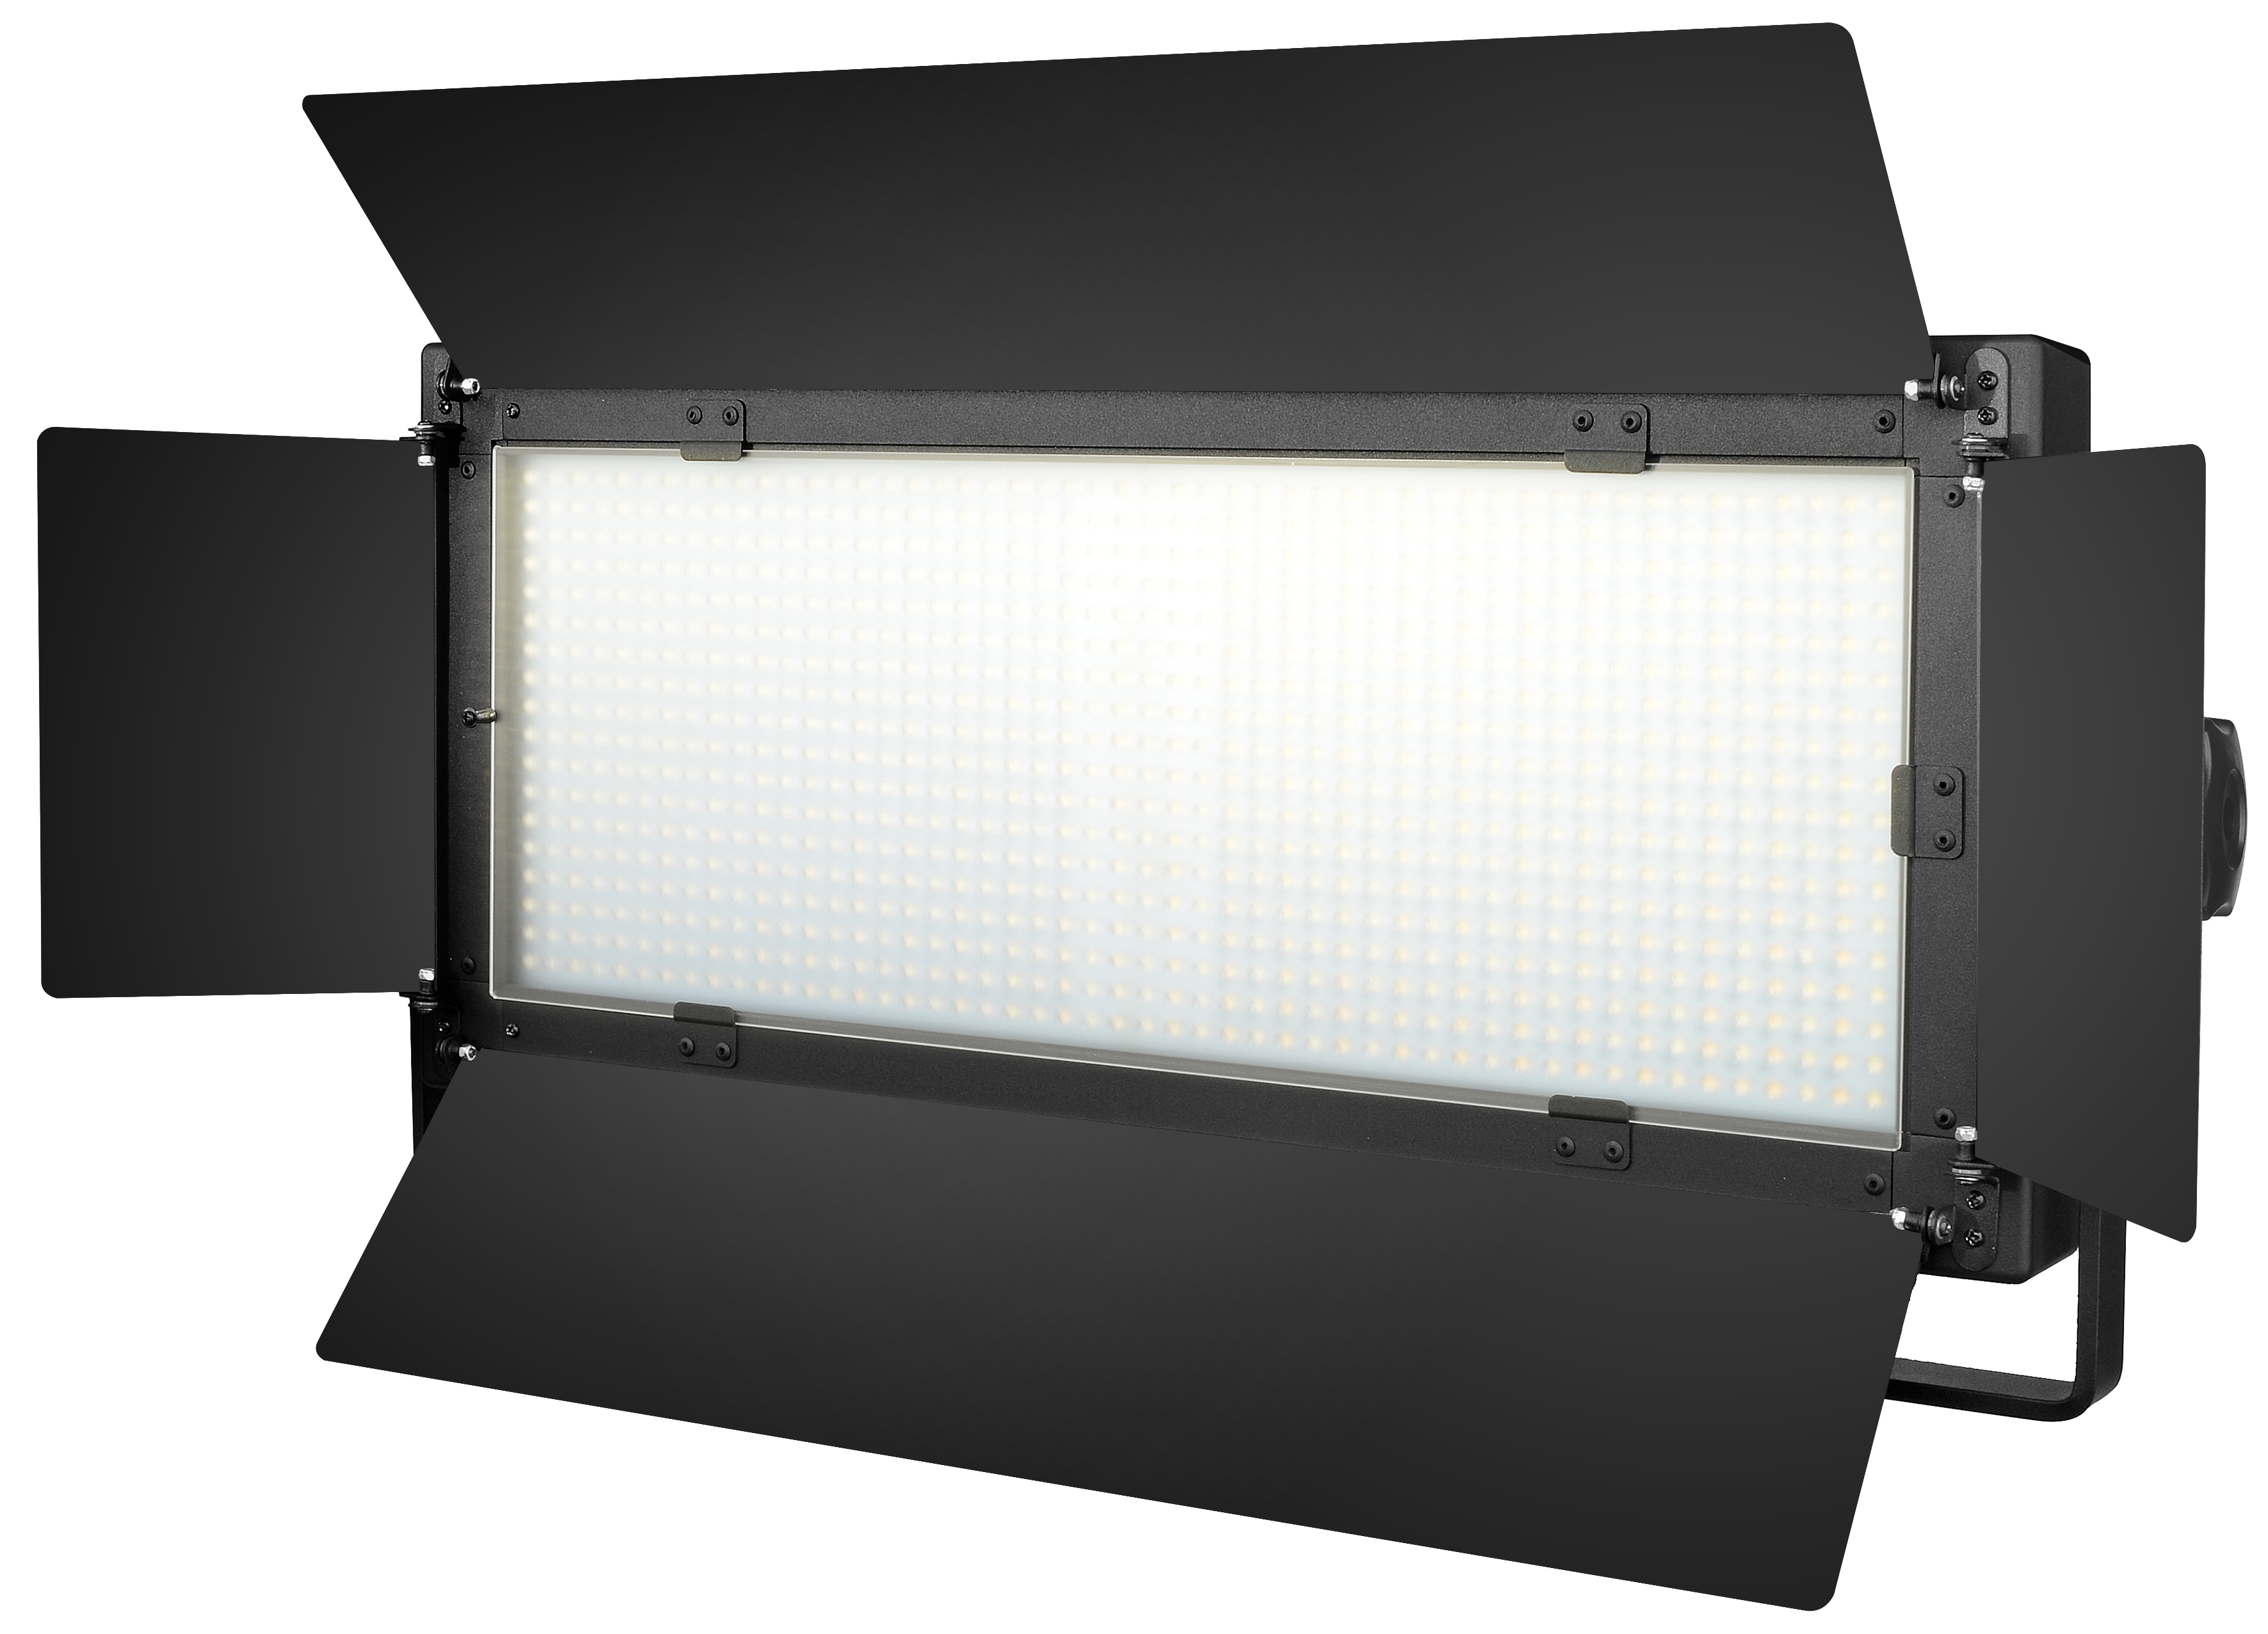 Led Verlichting Met Los Paneel Bresser Lg 900a Bi Colour Led Studio Panel Light 54 W 8 860 Lux